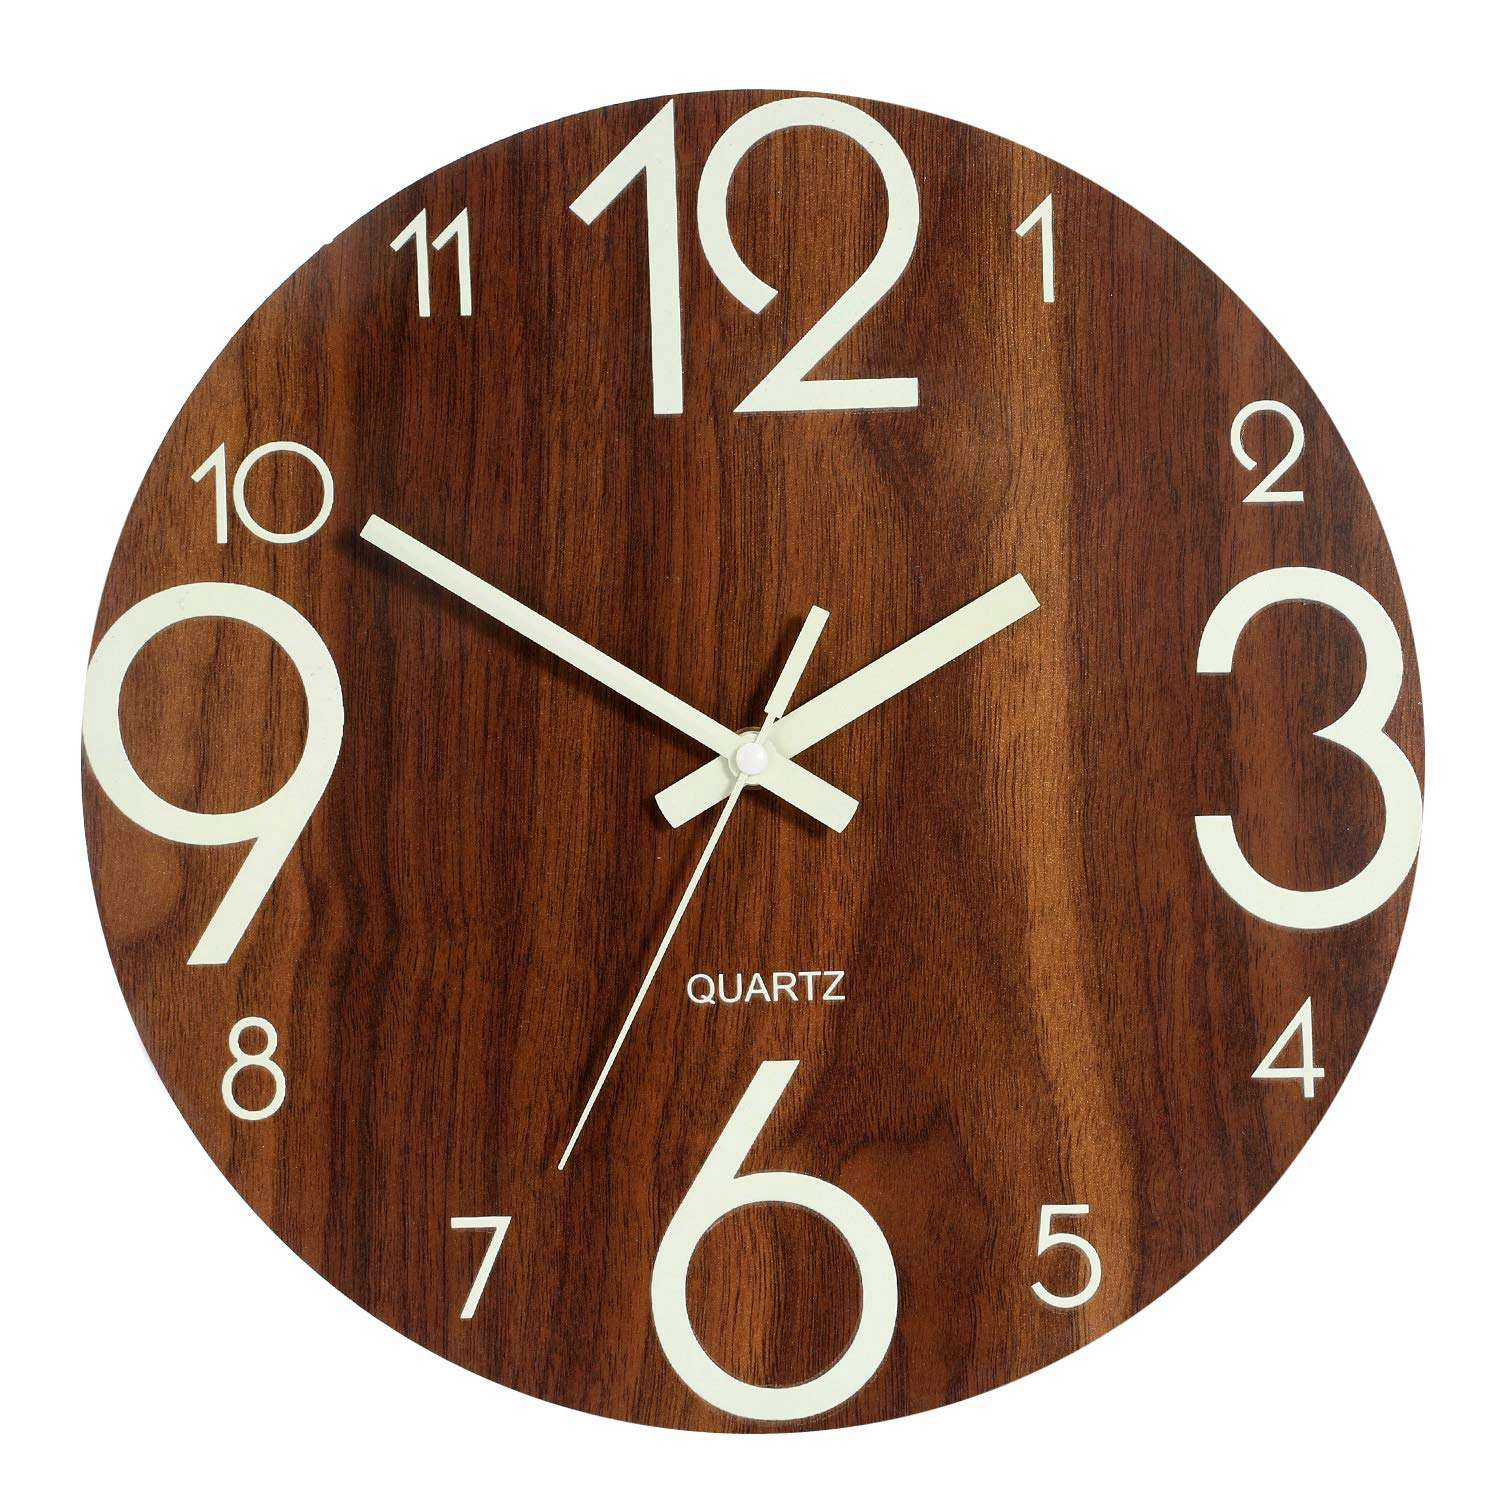 New-Luminous Wall Clock,12 Inch Wooden Silent Non-Ticking Kitchen Wall Clocks With Night Lights For Indoor/Outdoor Living Room